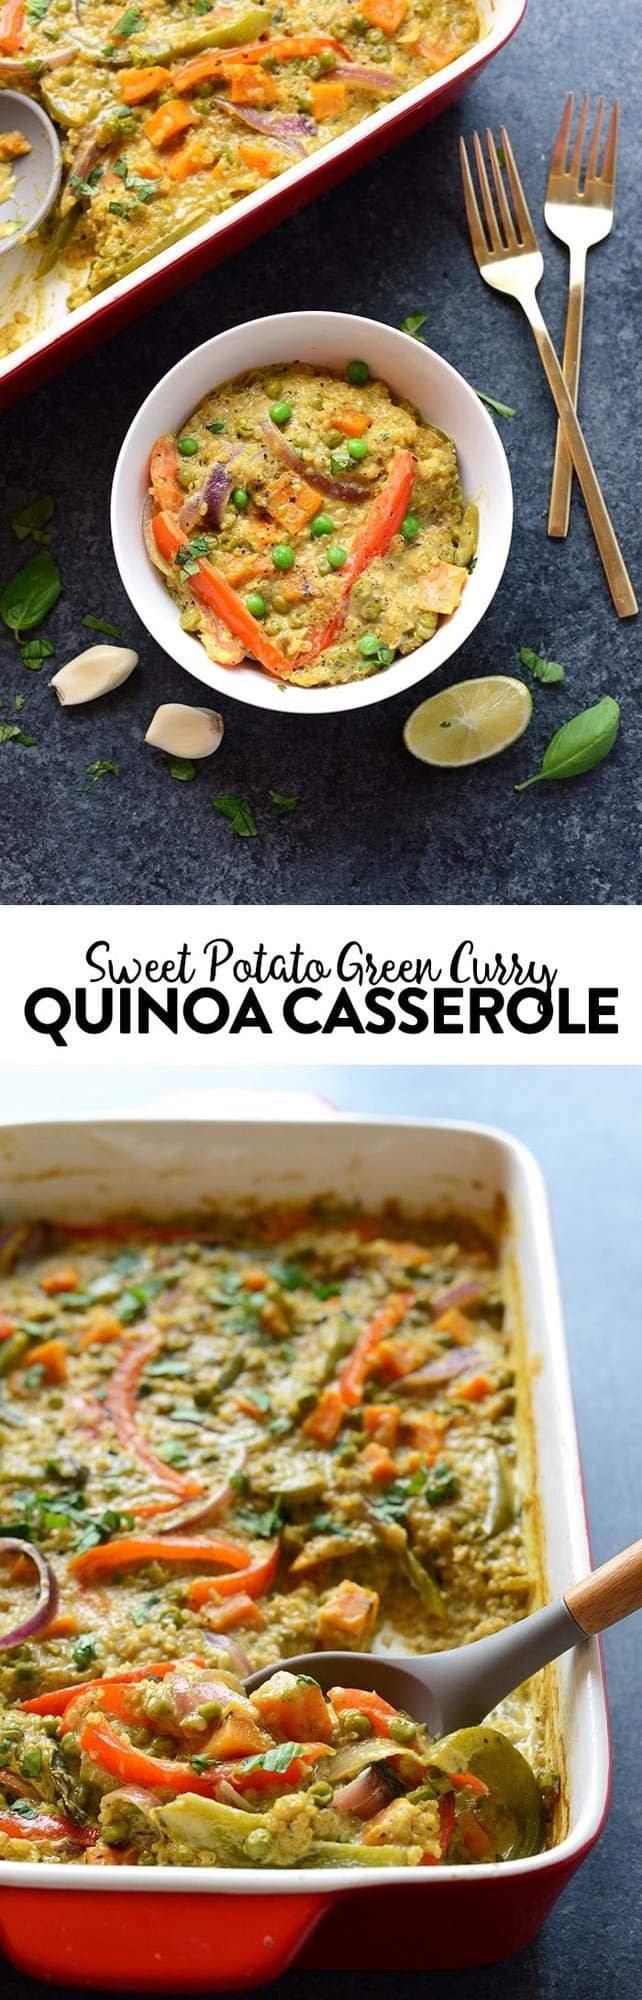 Curry just got even easier and more delicious than ever! In less than an hour you can have this delicious Sweet Potato Green Curry Quinoa Casserole ready for the entire fam.